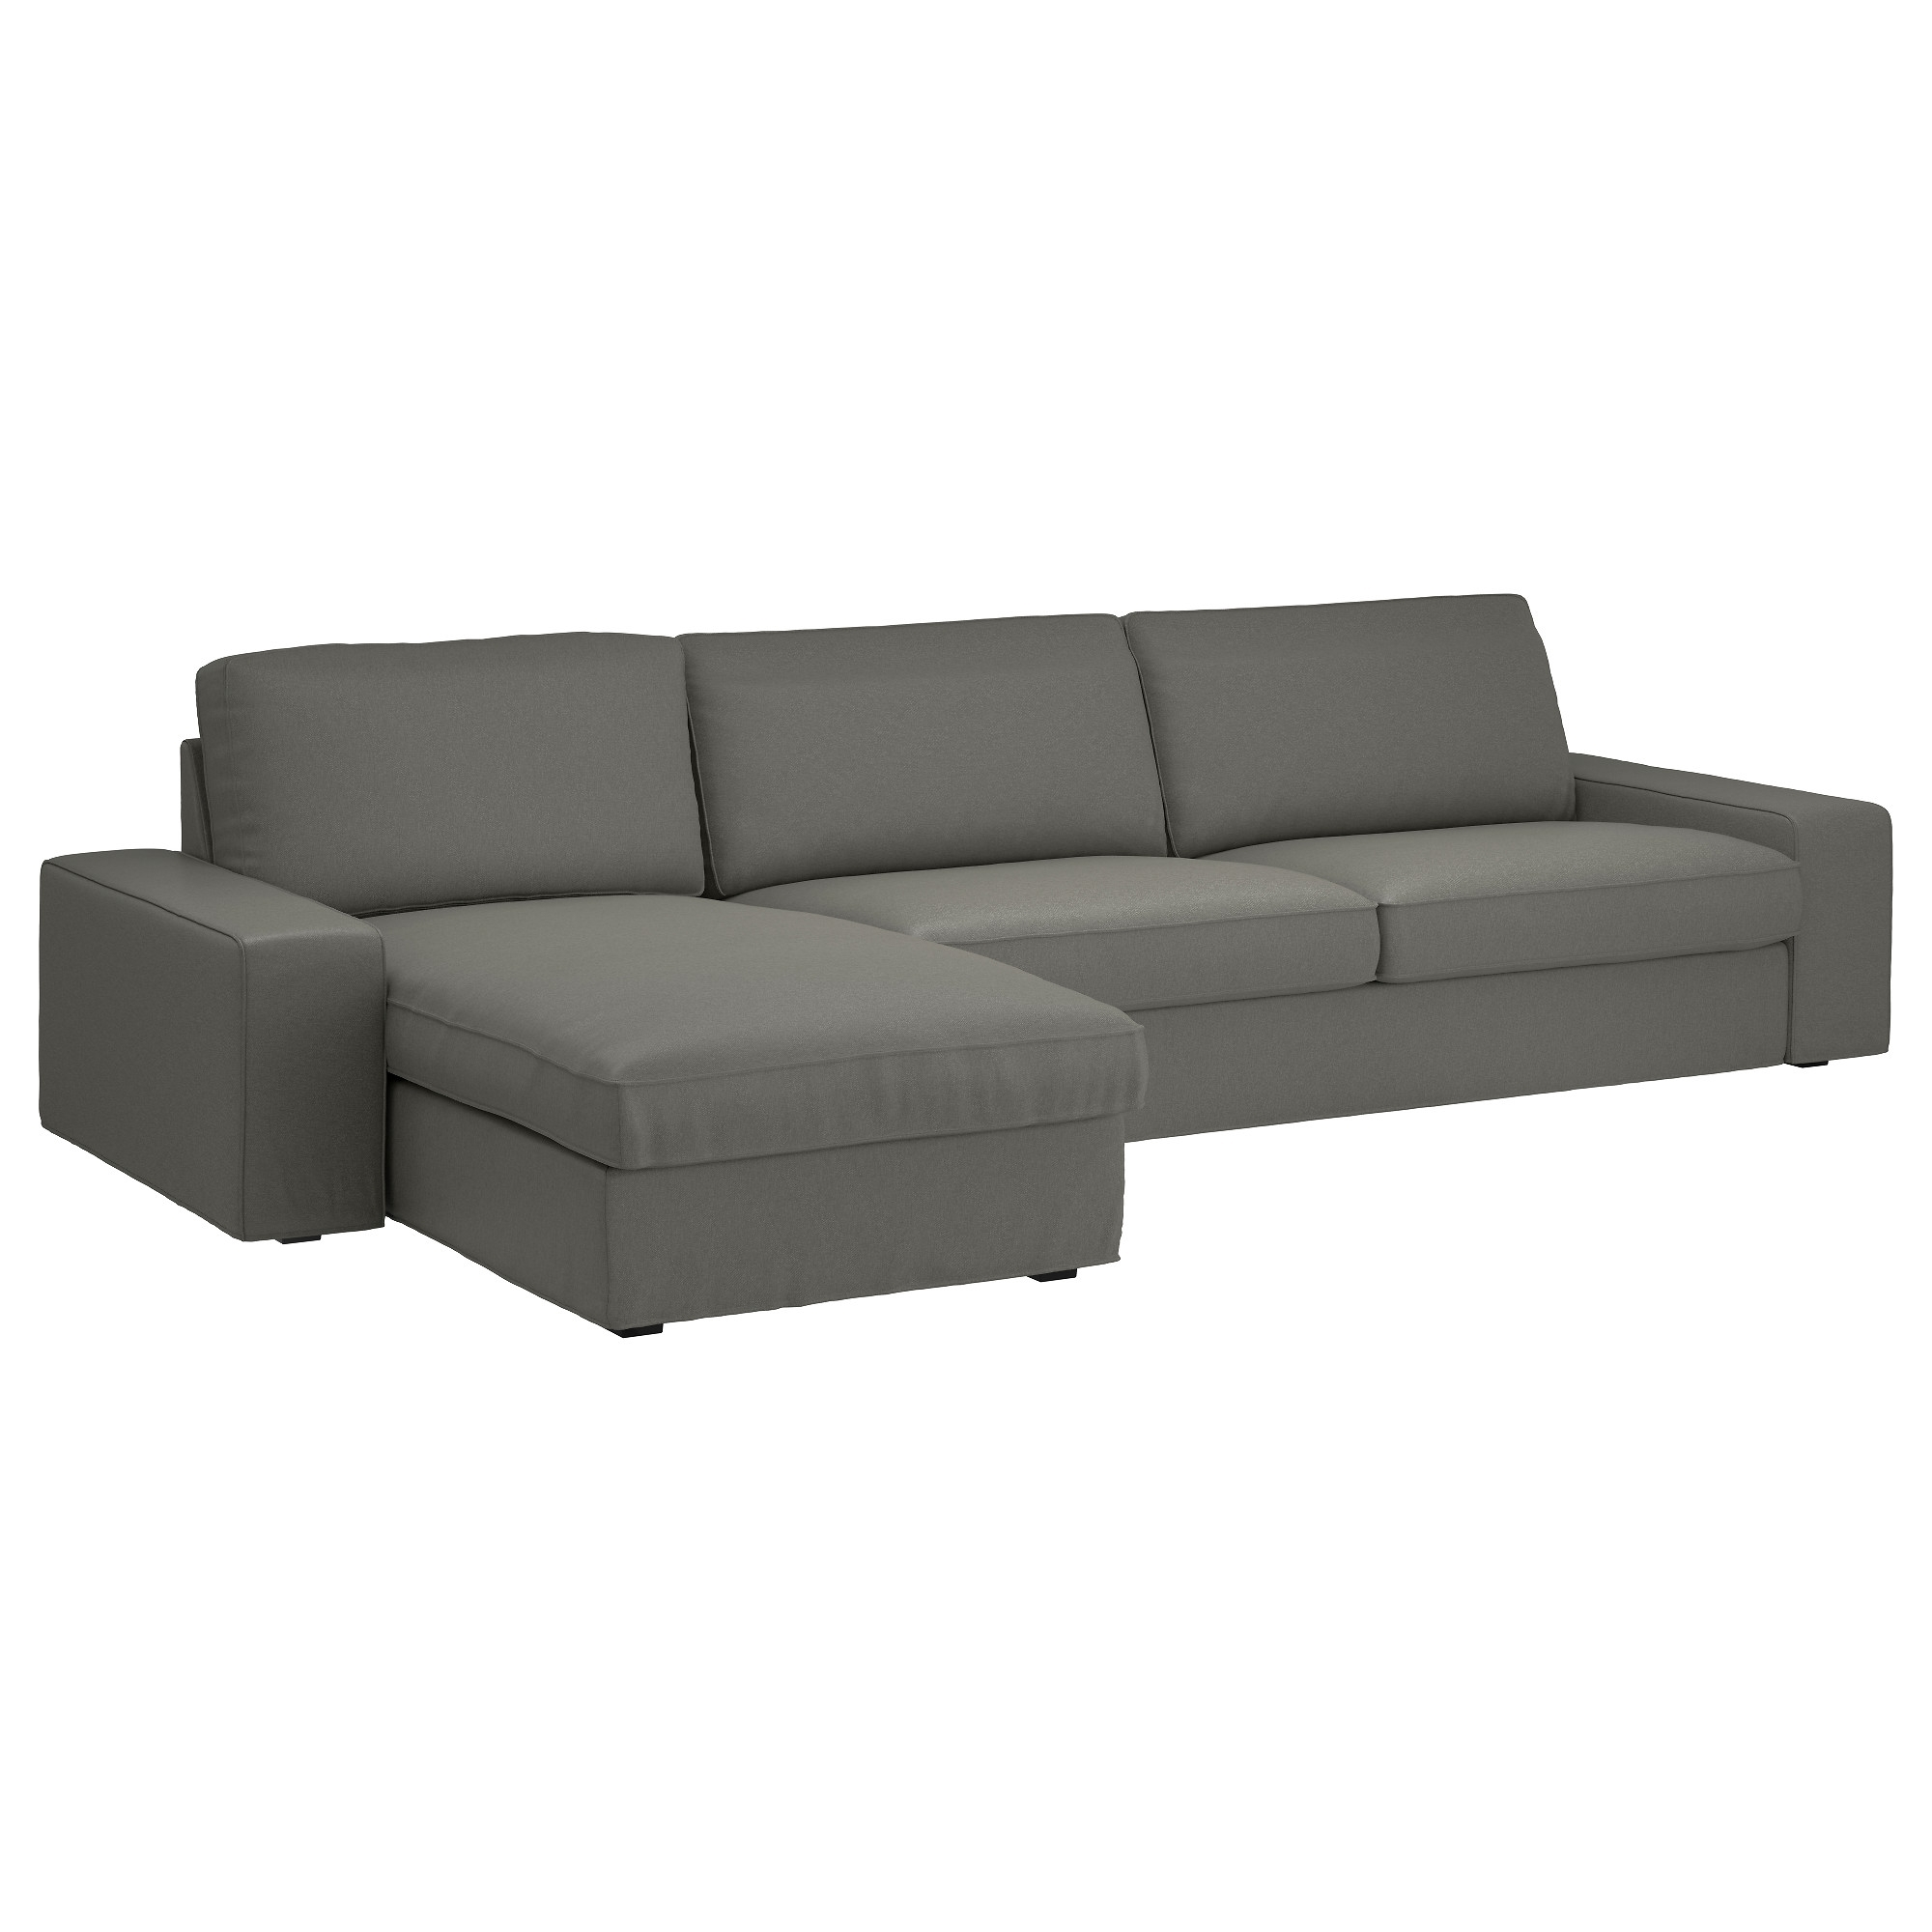 Most Recent Ikea Chaise Lounges In Kivik Sectional, 4 Seat – Hillared Beige – Ikea (View 10 of 15)